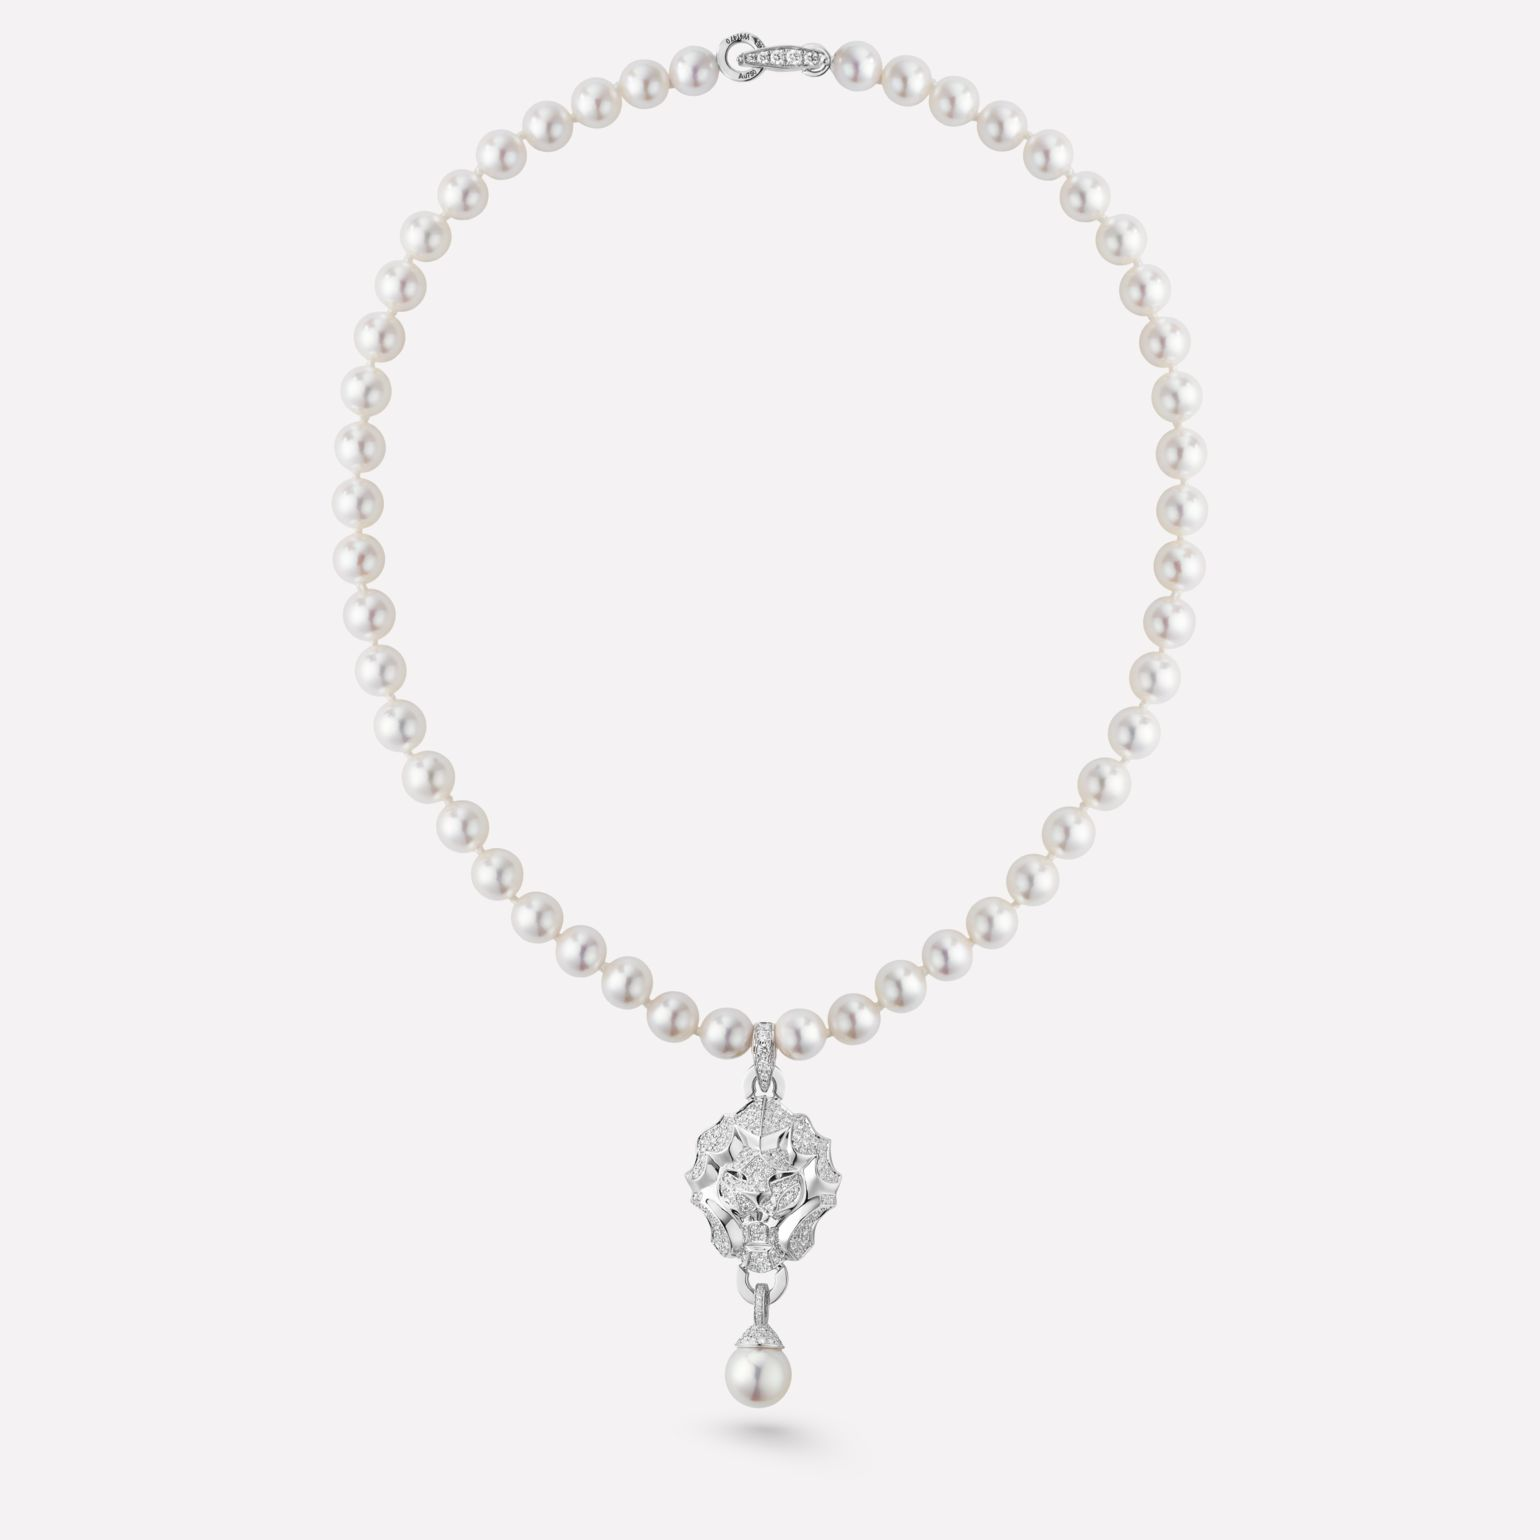 Collier Sous le Signe du Lion Motif lion en or blanc 18 carats, diamants et perles de culture